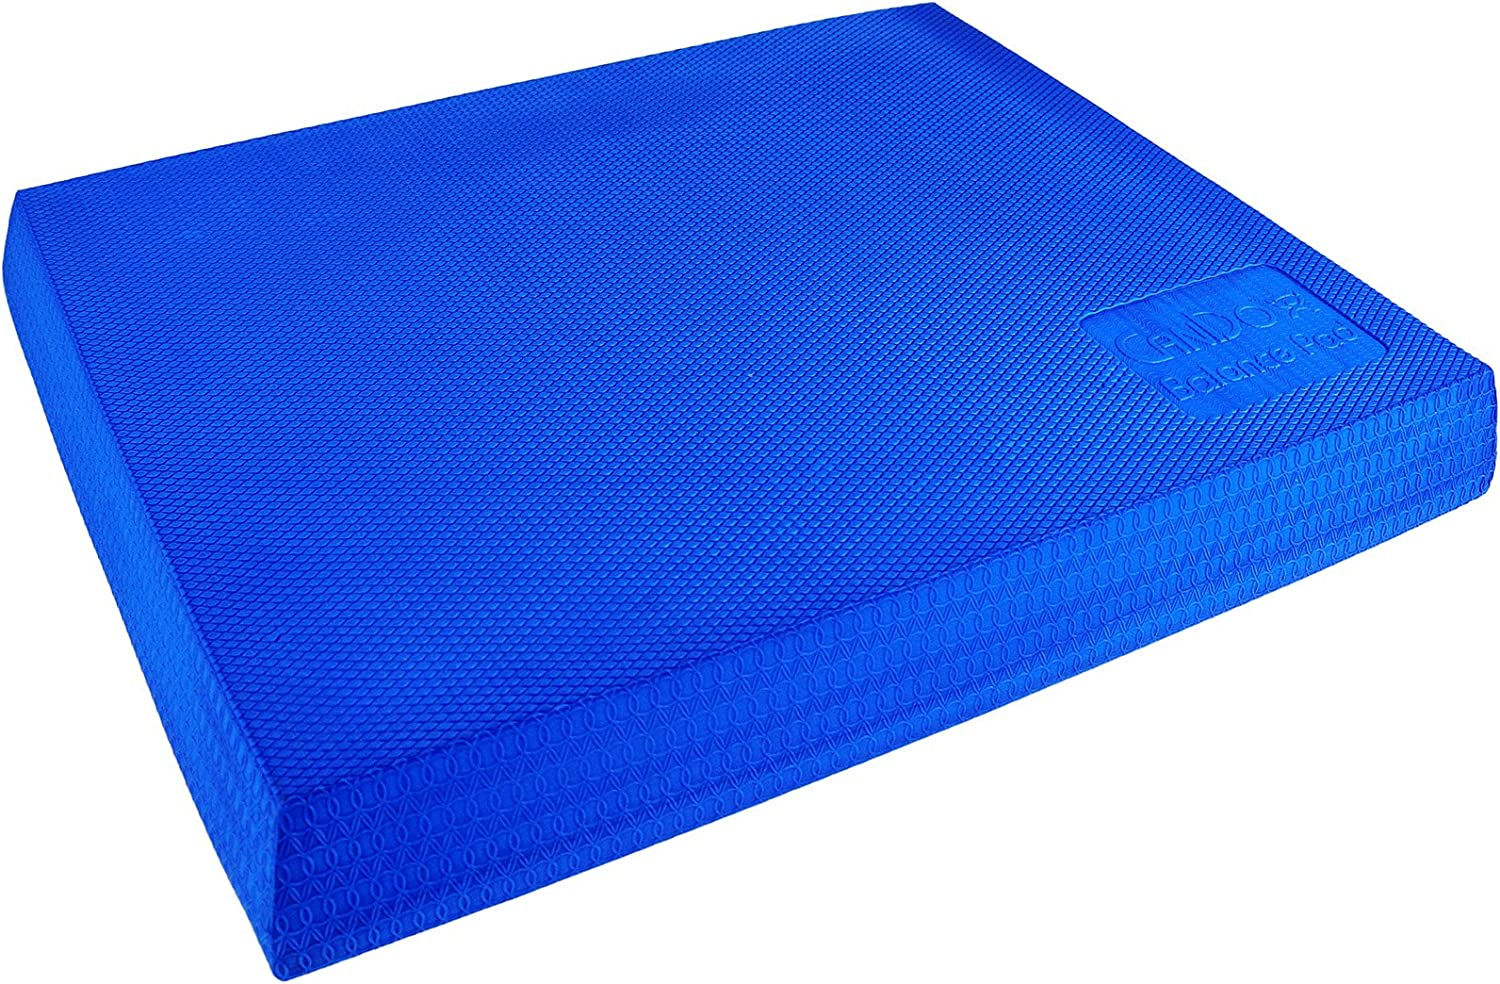 Power Systems Versa Balance Pad for Stability 83550 19 x 15 x 2 Inches Blue Strength and Coordination Training